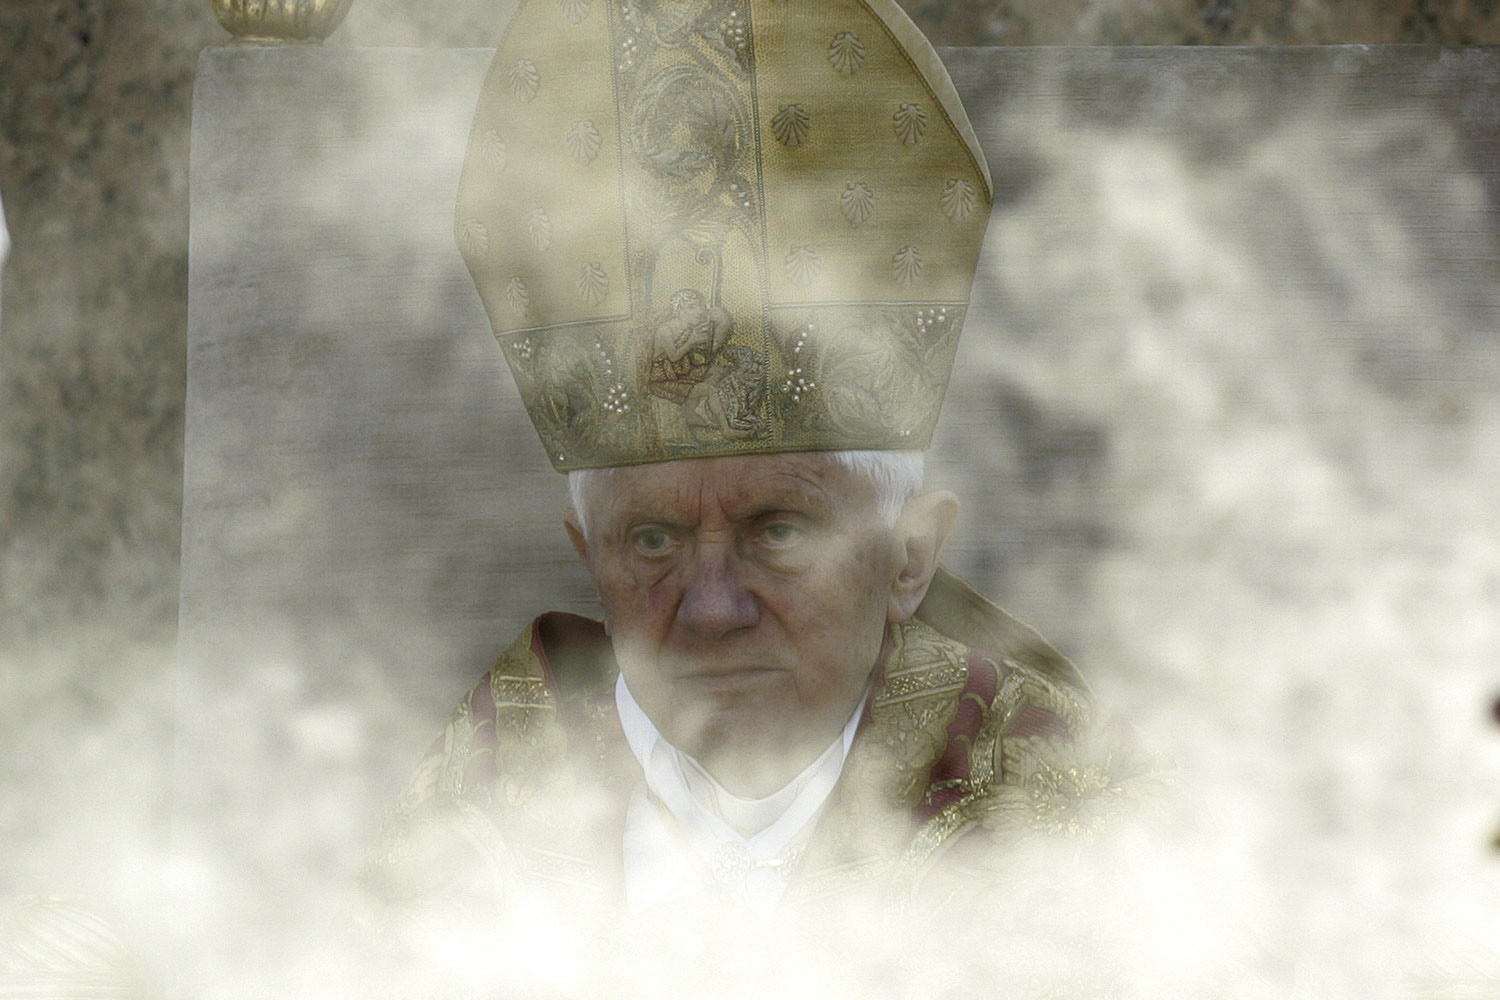 April 17, 2011. Pope Benedict XVI peers through incense during the liturgical celebration of Palm Sunday in St. Peter's Square in Rome, Italy.